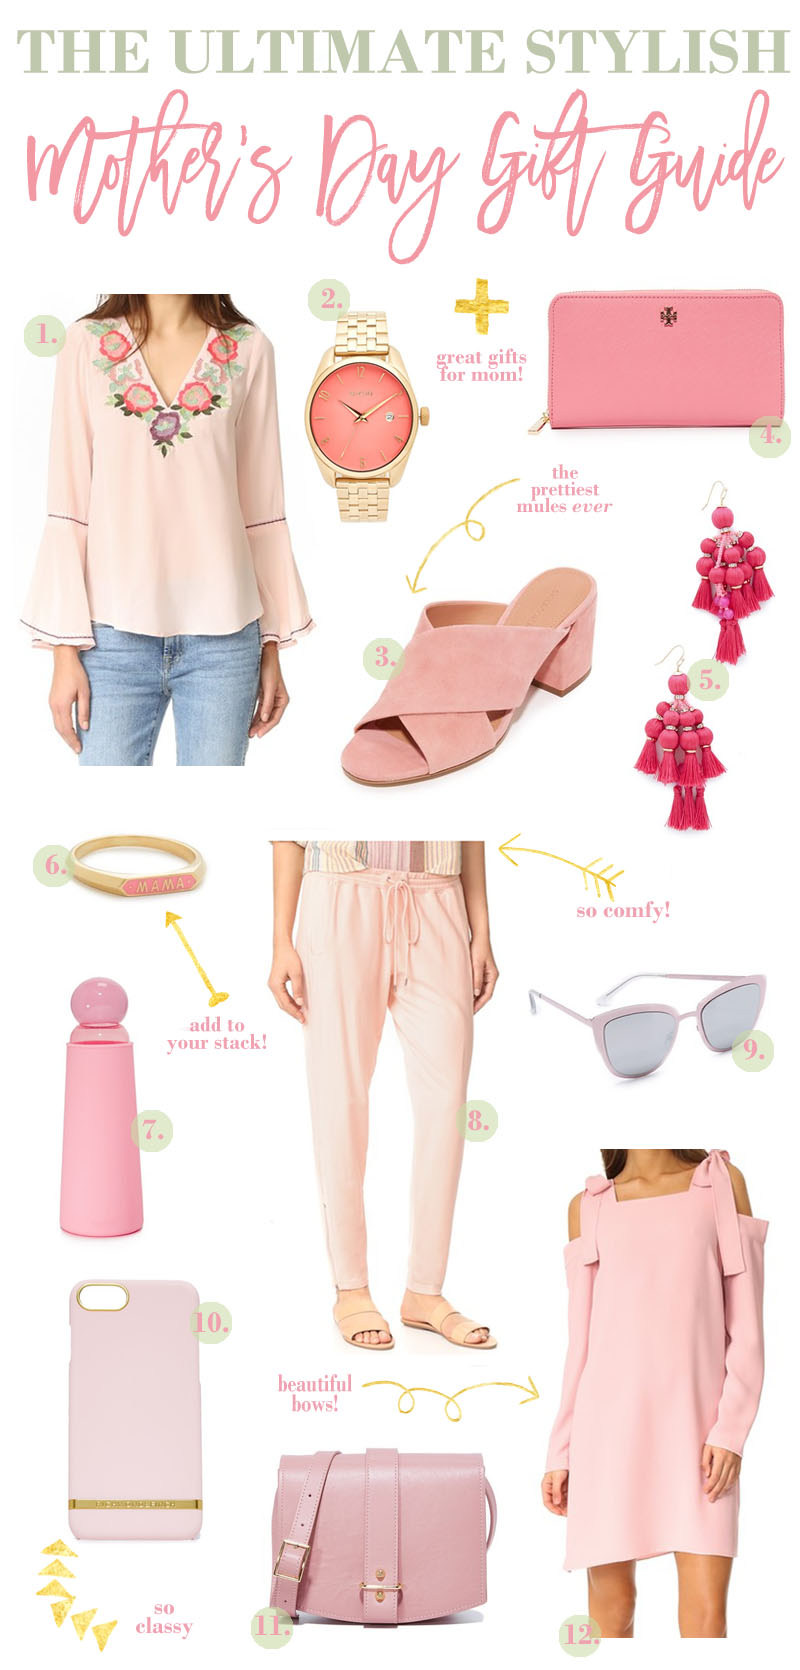 Unique & Stylish Gifts For Mom + Shopbop Sale Details by Utah fashion blogger Sandy A La Mode